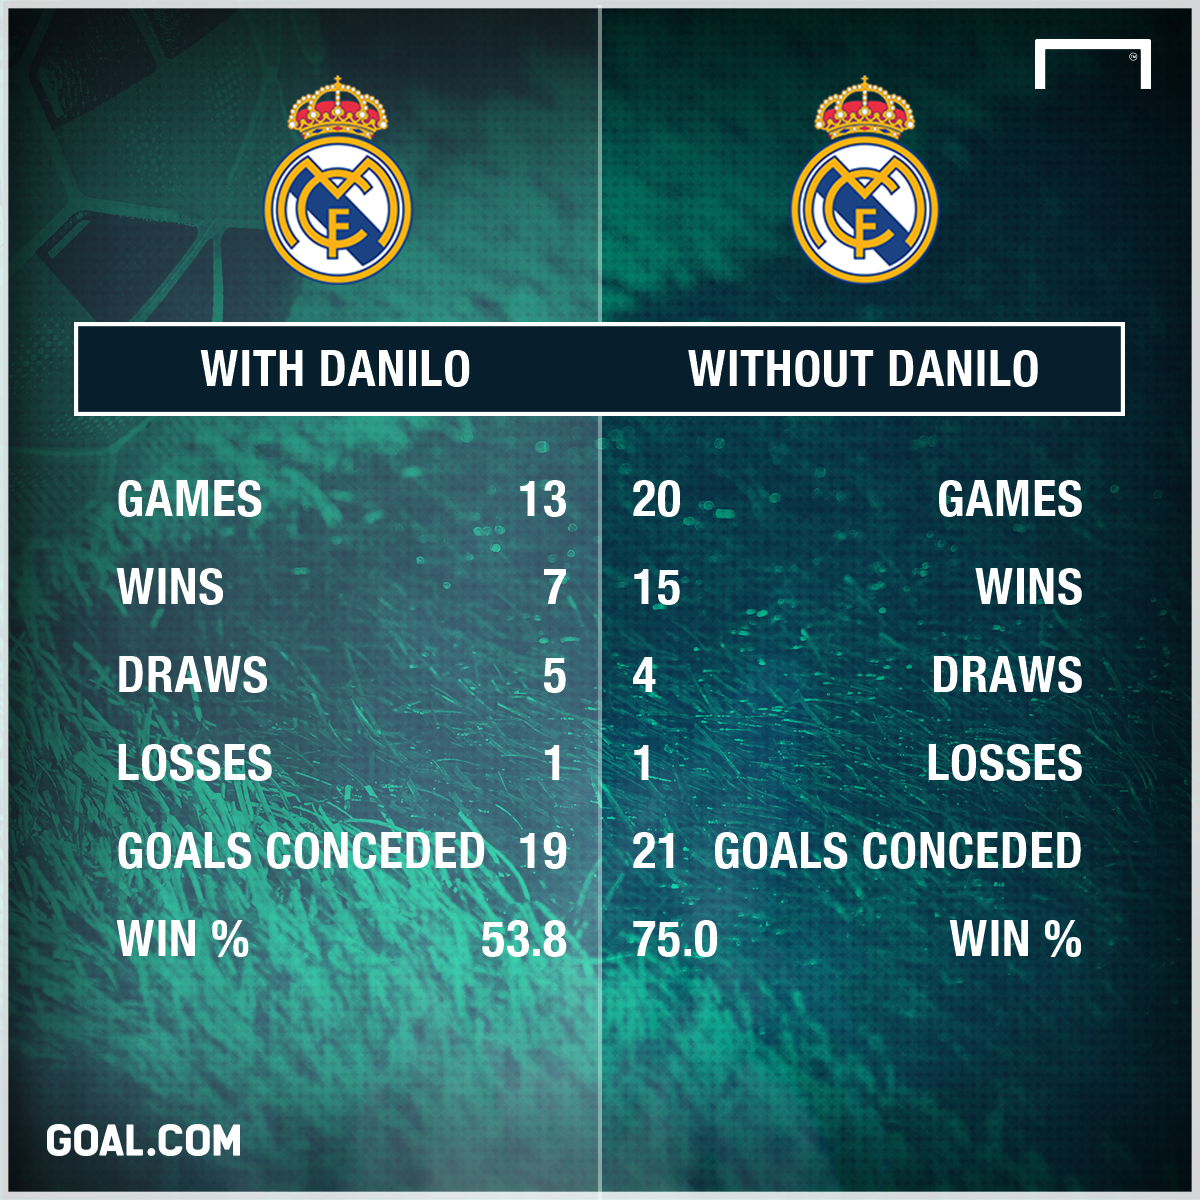 Danilo comparison graphic